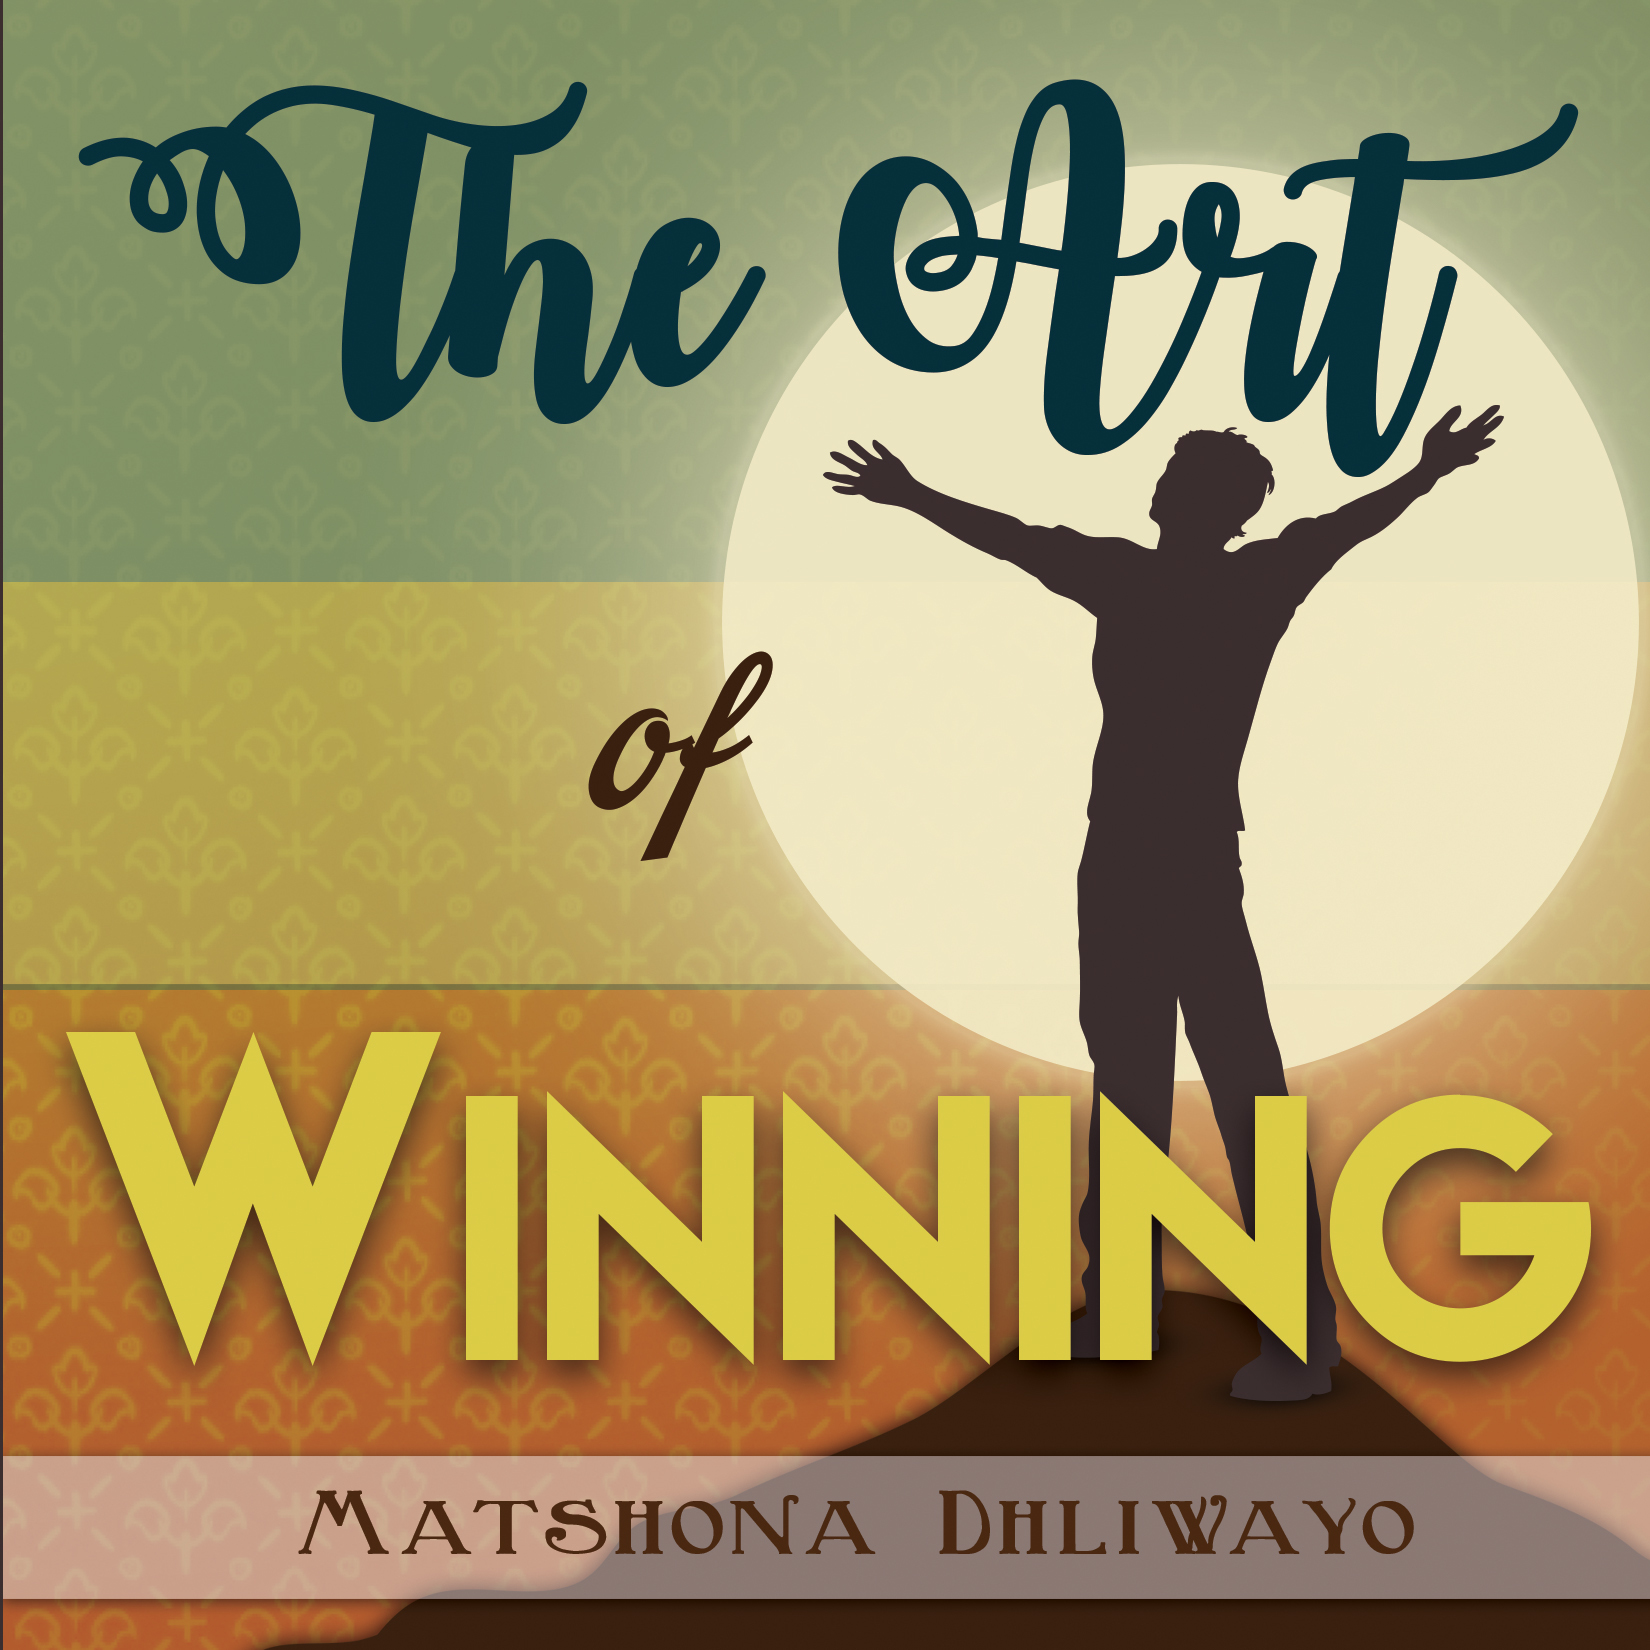 The Art of Winning (Matshona Dhliwayo)